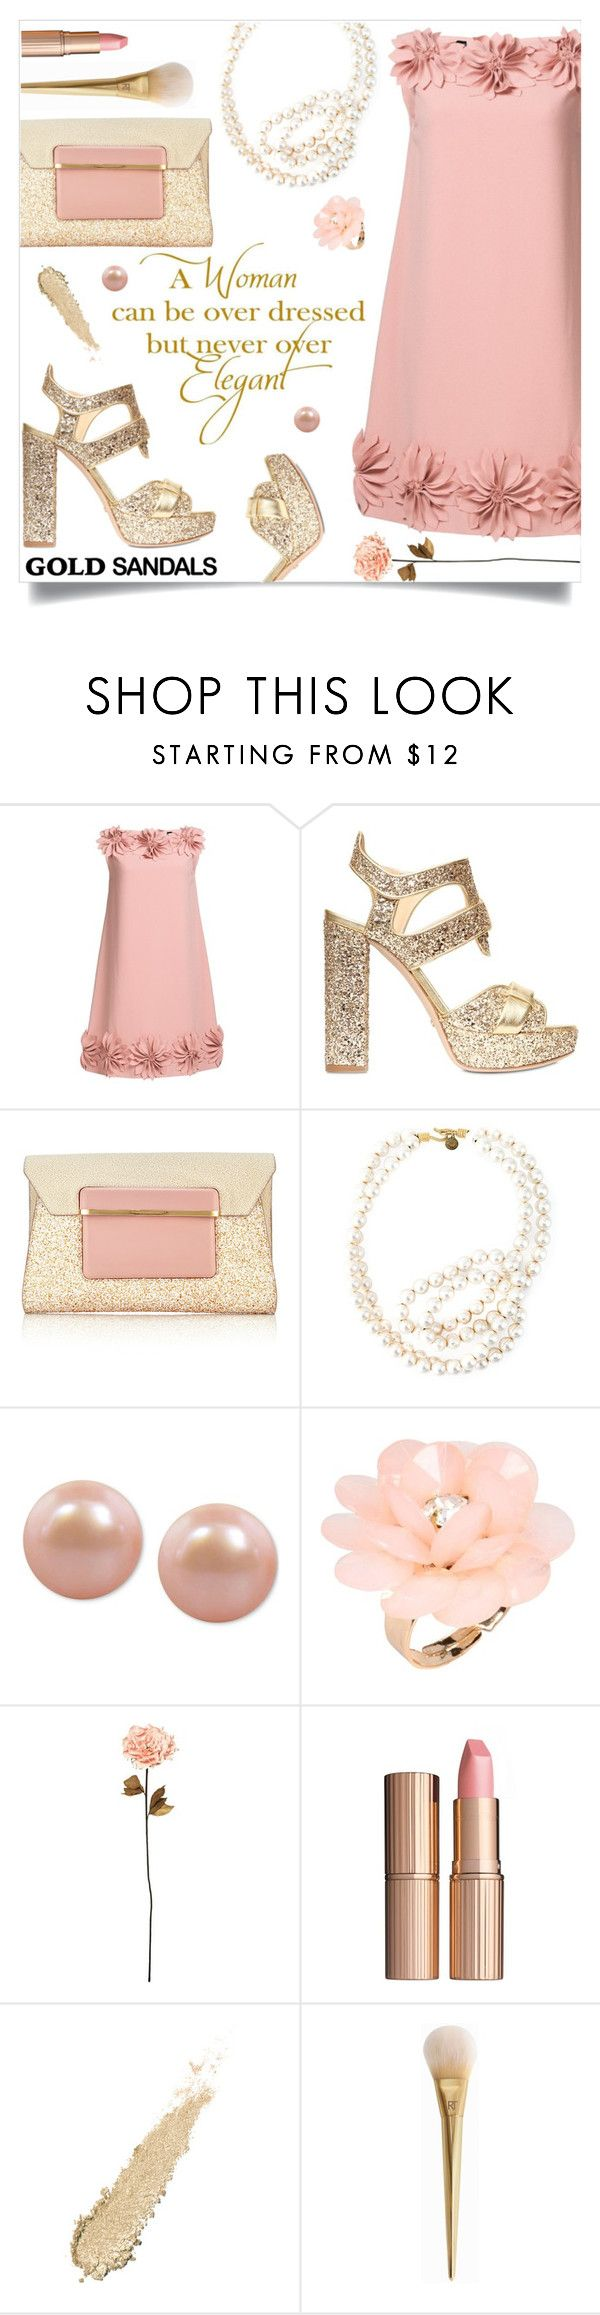 """Elegant"" by einn-enna ❤ liked on Polyvore featuring Chanel, Jerome C. Rousseau, Mary Katrantzou, STELLA McCARTNEY, Honora, Dettagli, Shabby Chic, Charlotte Tilbury and goldsandals"